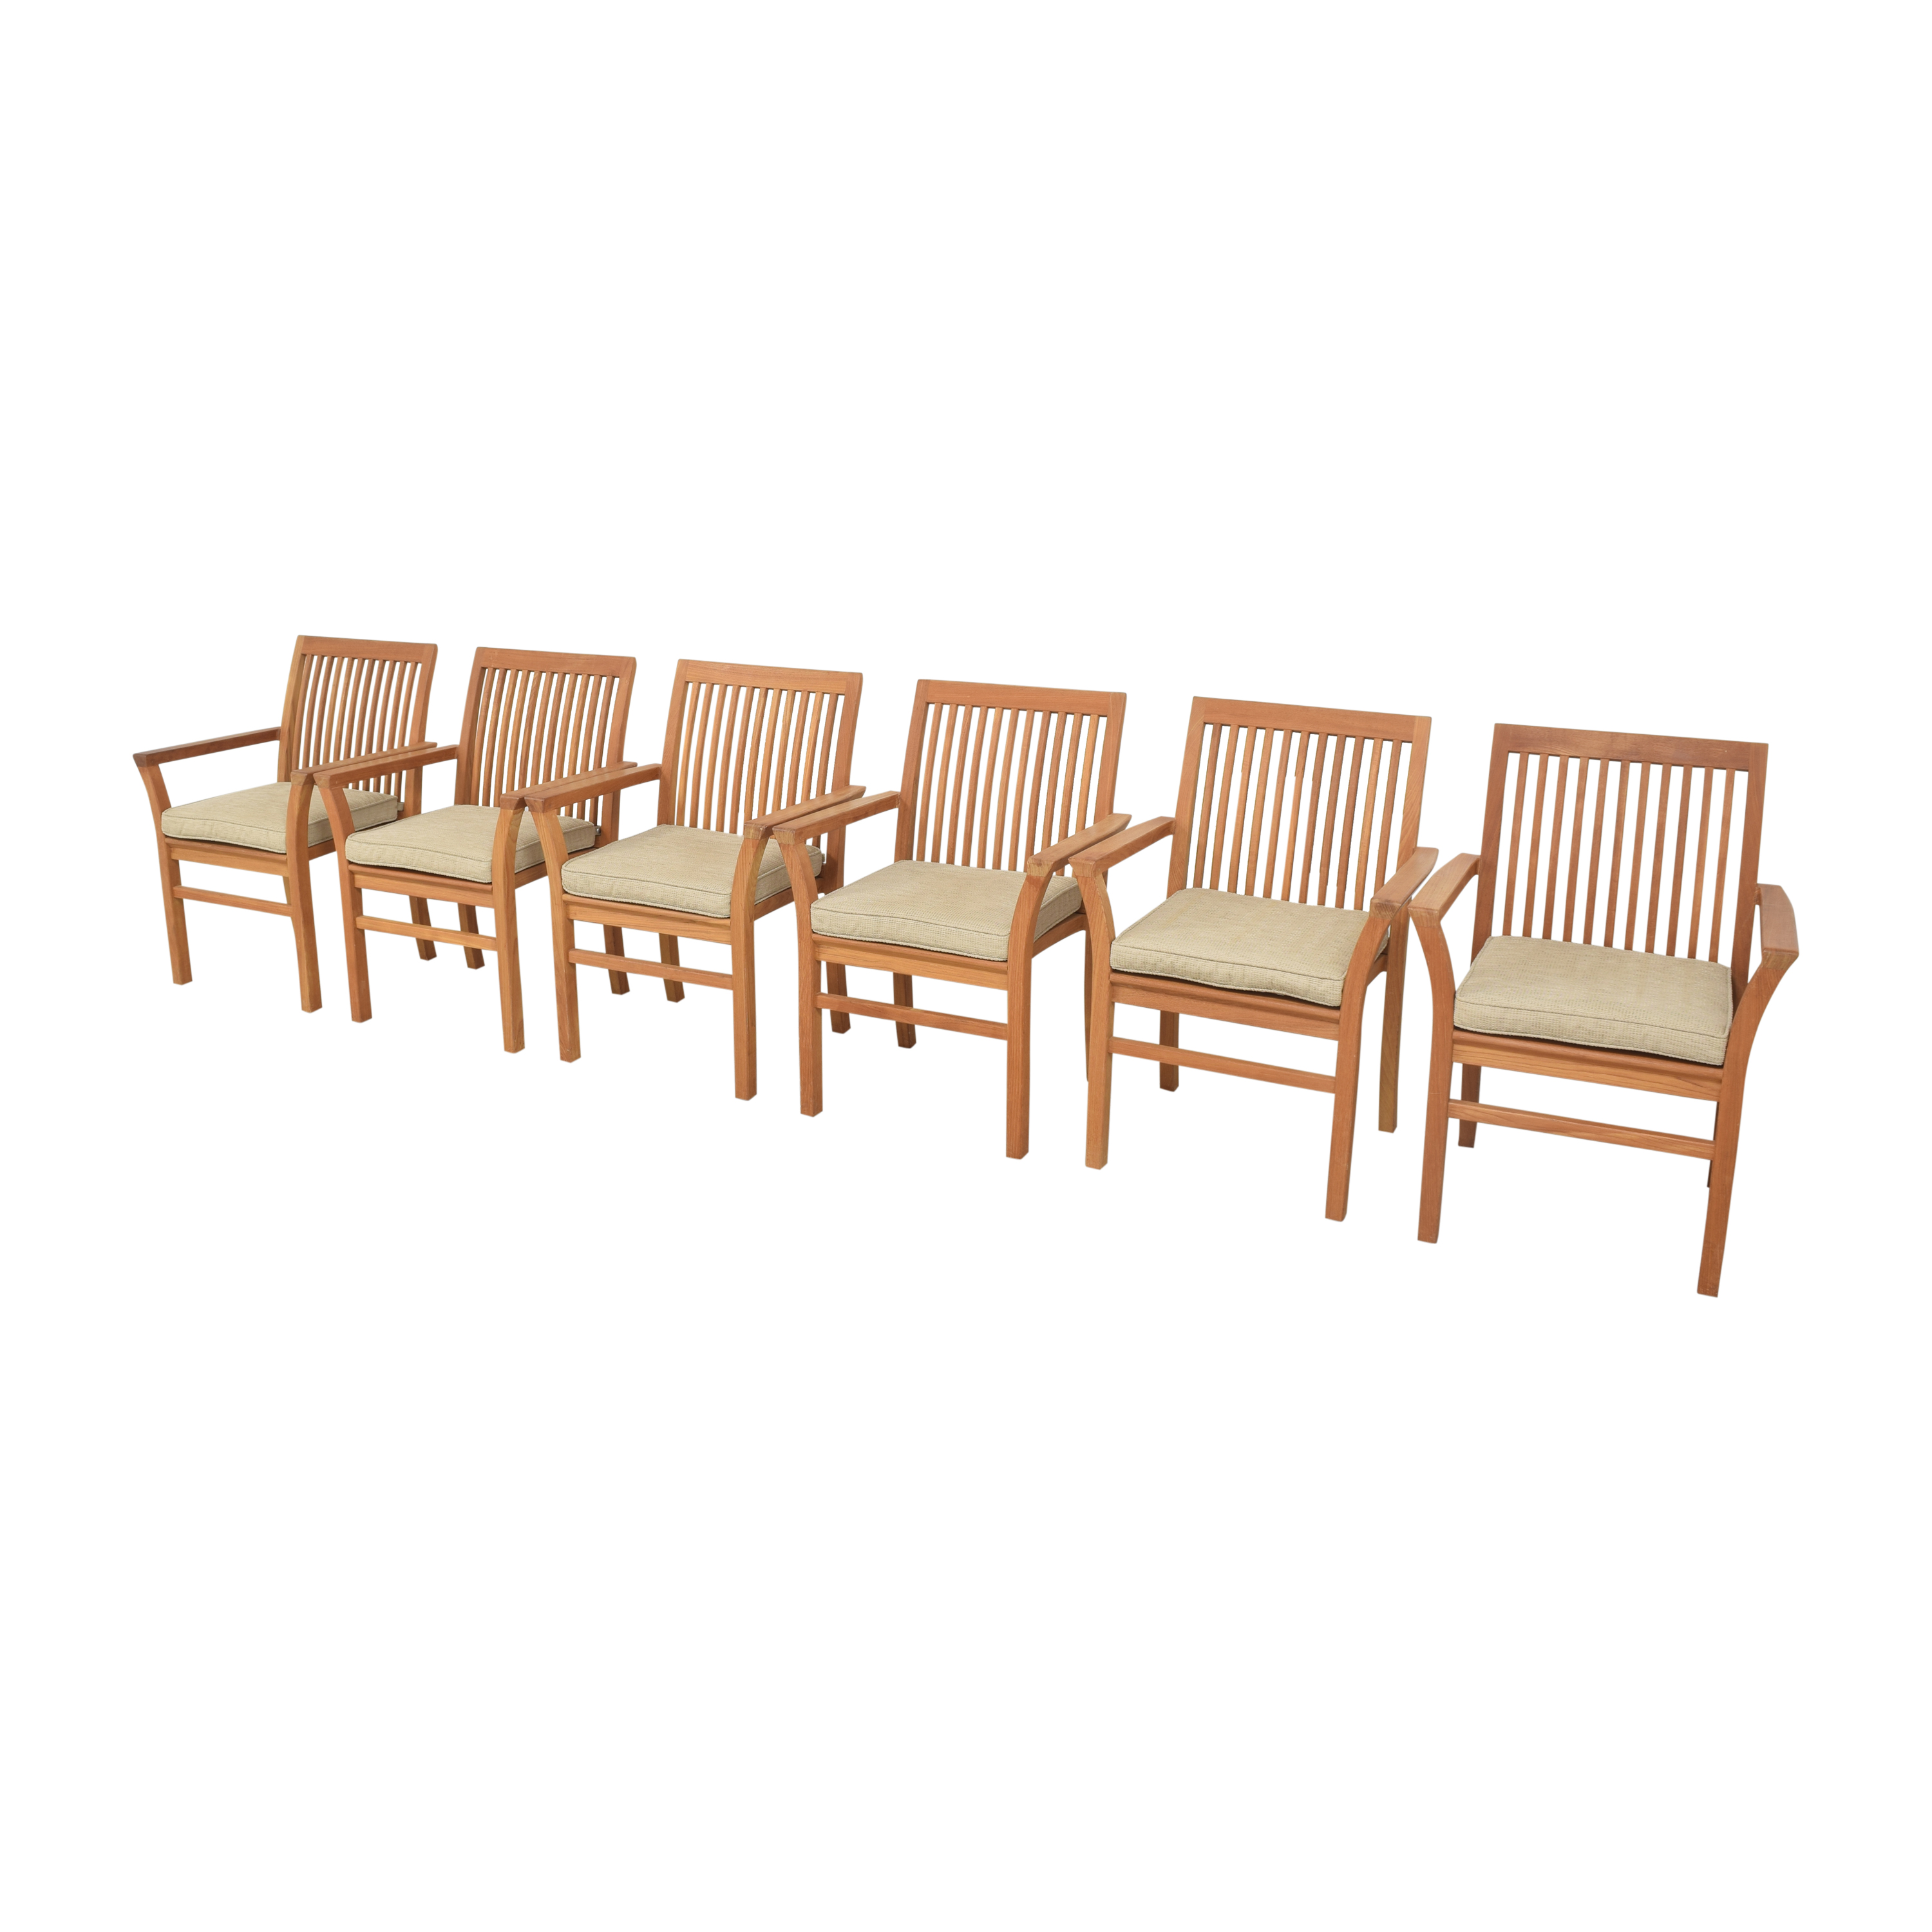 Henry Hall Designs Stacking Armchairs / Dining Chairs